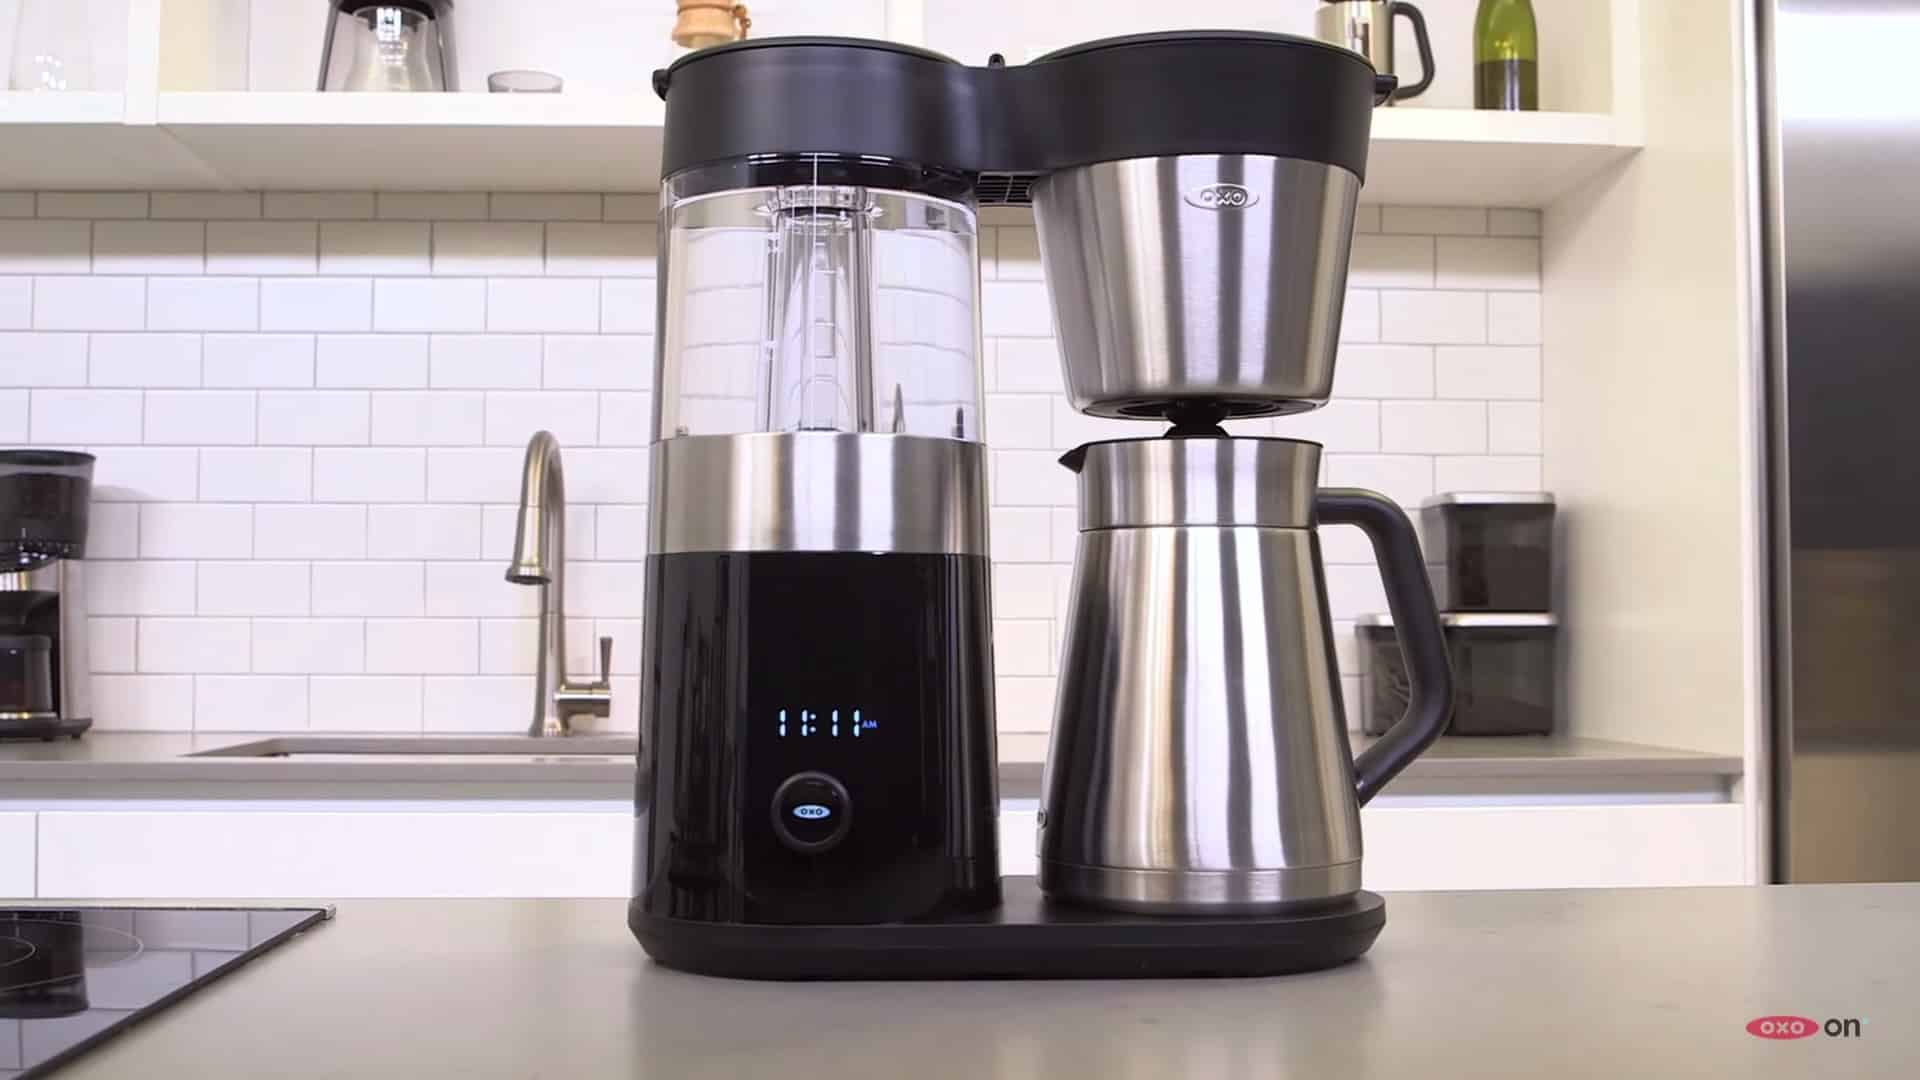 OXO On Barista Brain 9 Cup Coffee Maker Details